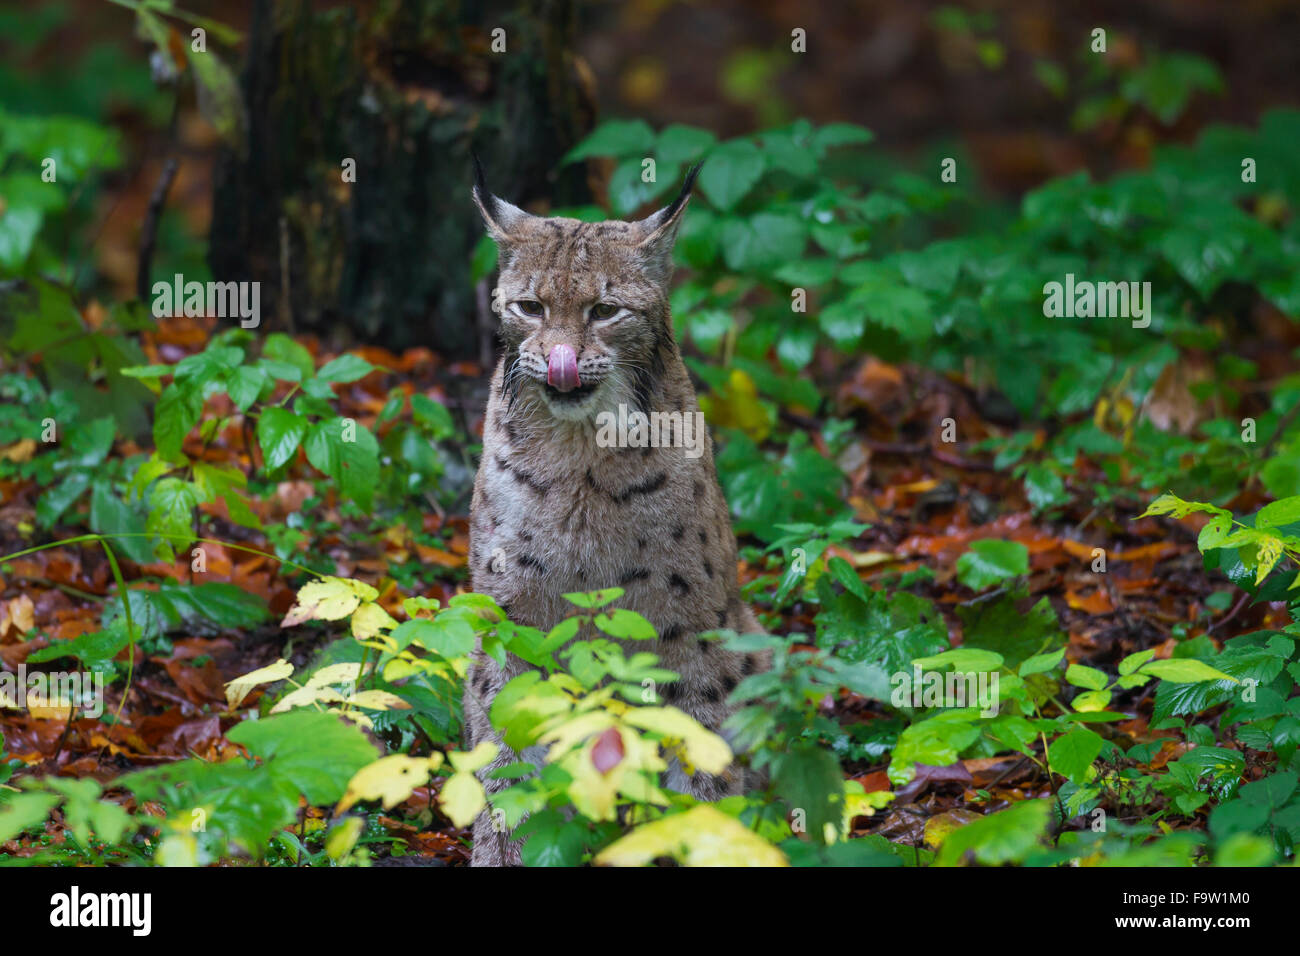 Eurasian lynx (Lynx lynx) licking nose in forest in autumn - Stock Image